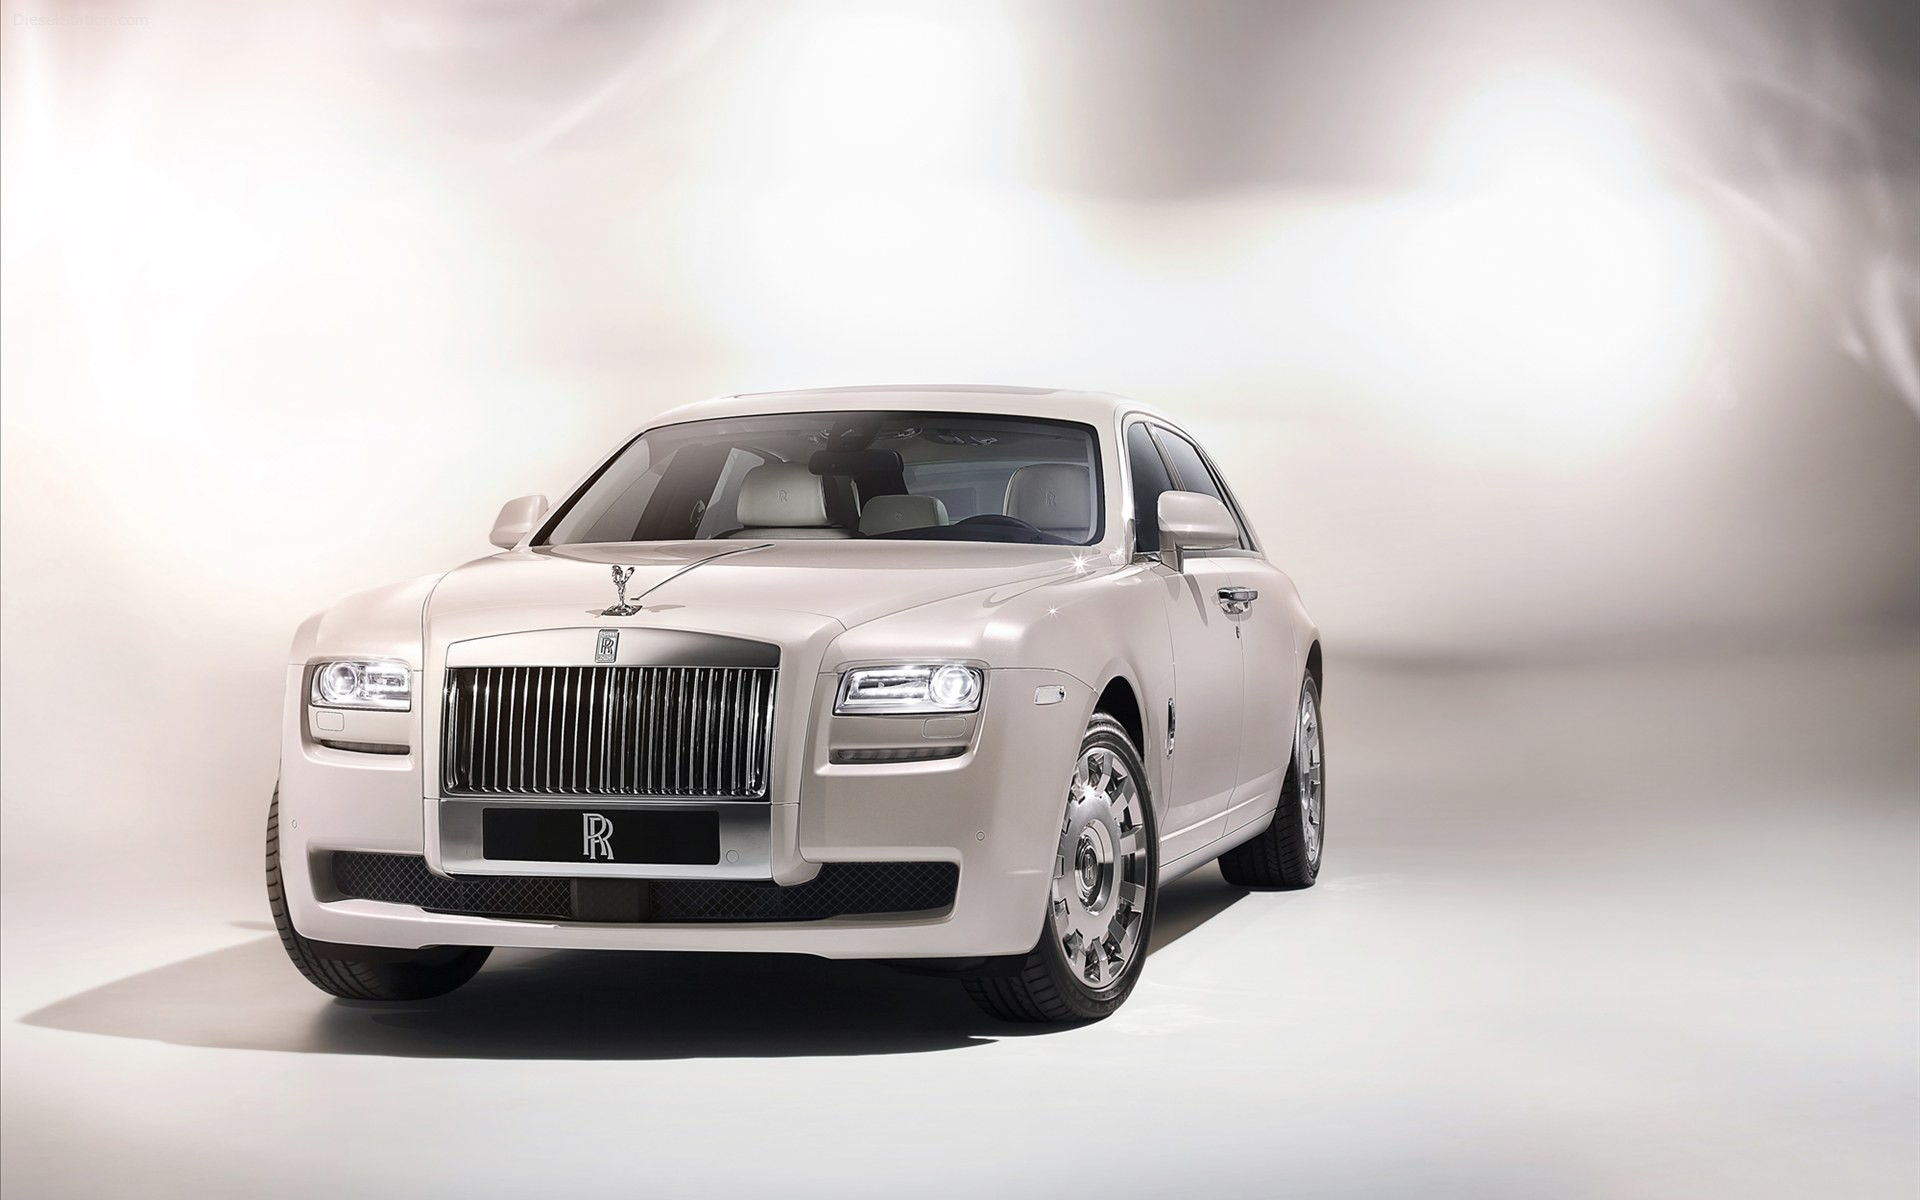 rolls royce ghost six senses 2012 wallpaper hd car wallpapers. Black Bedroom Furniture Sets. Home Design Ideas